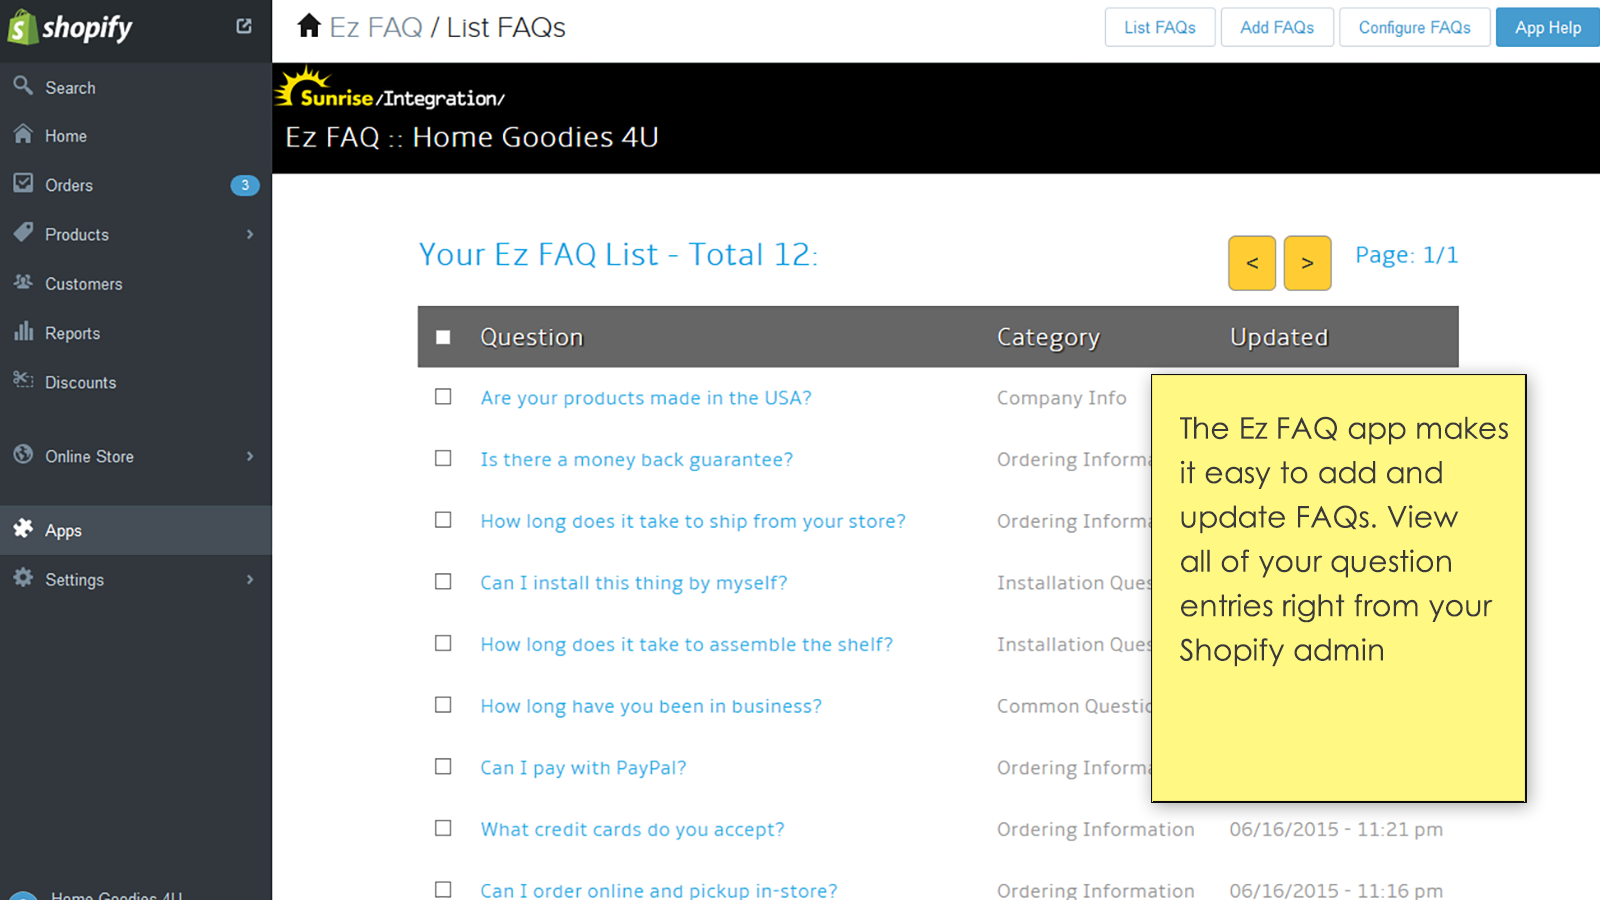 See the full list of FAQs and categories